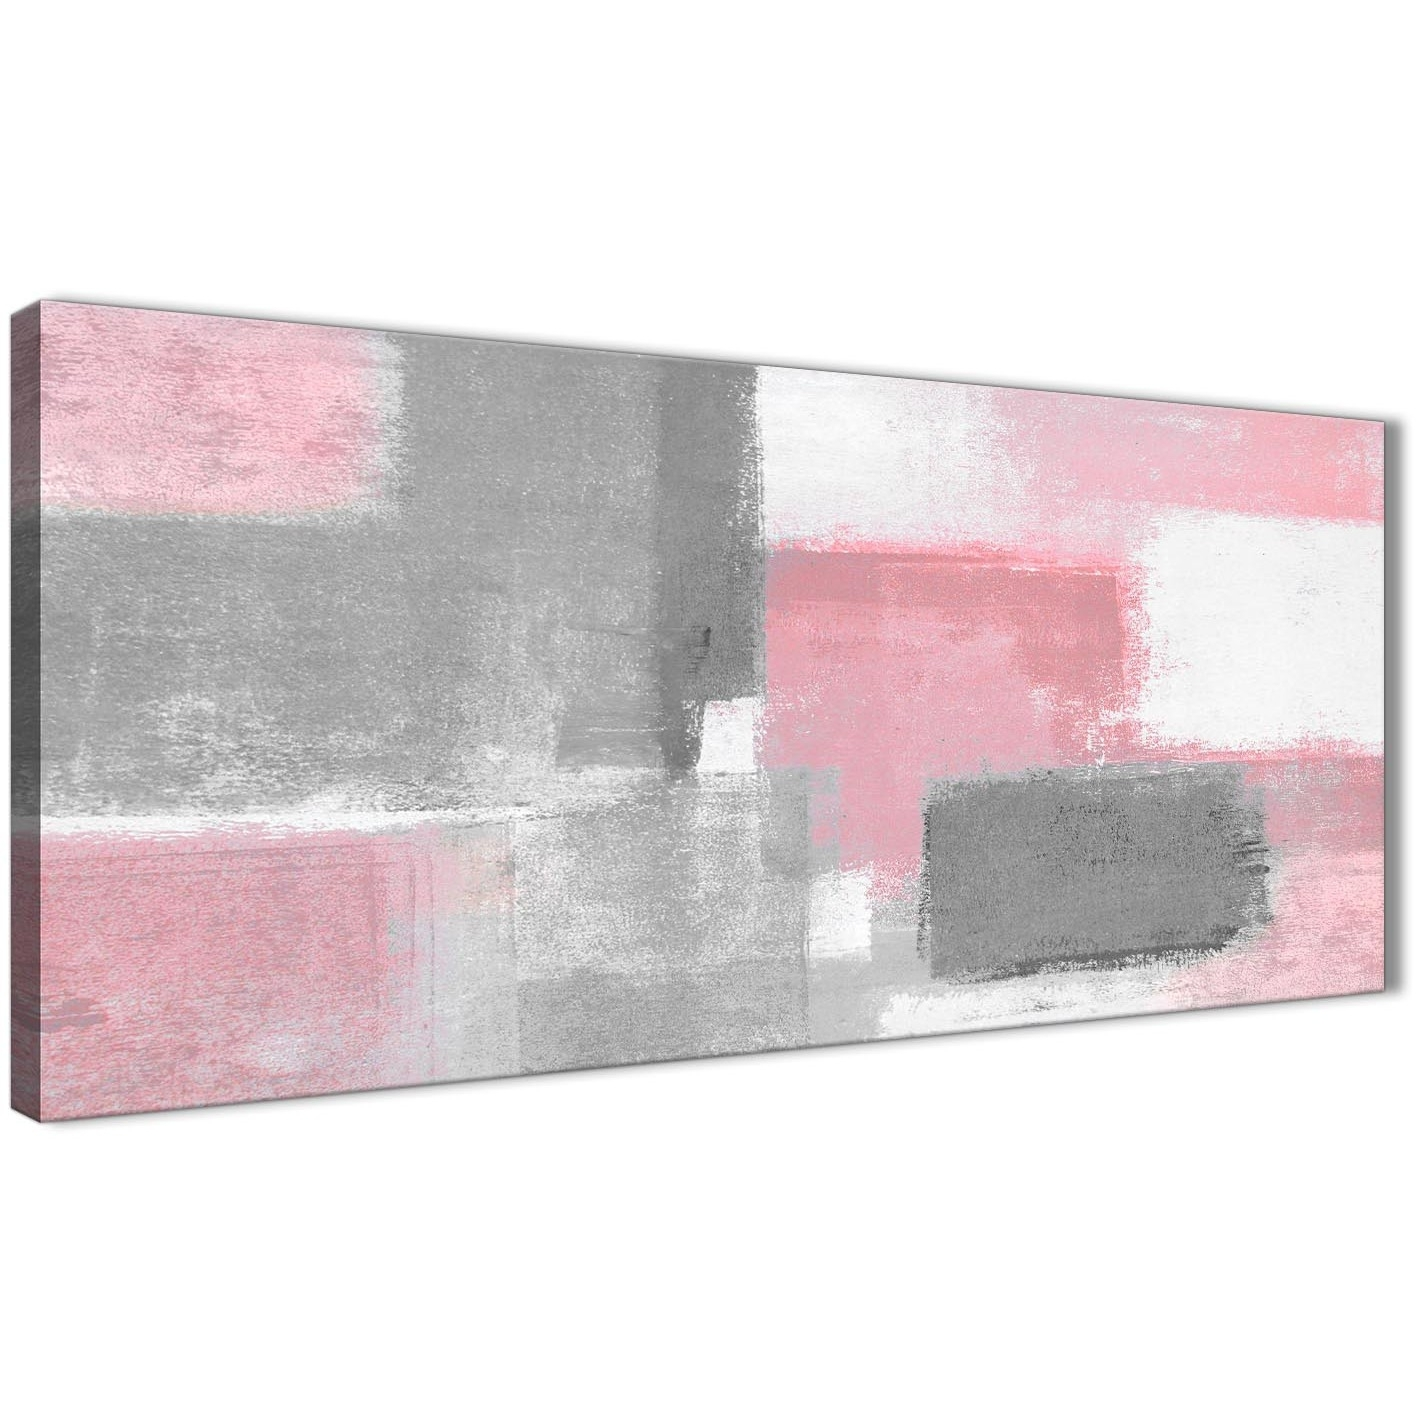 Blush Pink Grey Painting Bedroom Canvas Wall Art Accessories Regarding Most Up To Date Pink Canvas Wall Art (View 7 of 15)